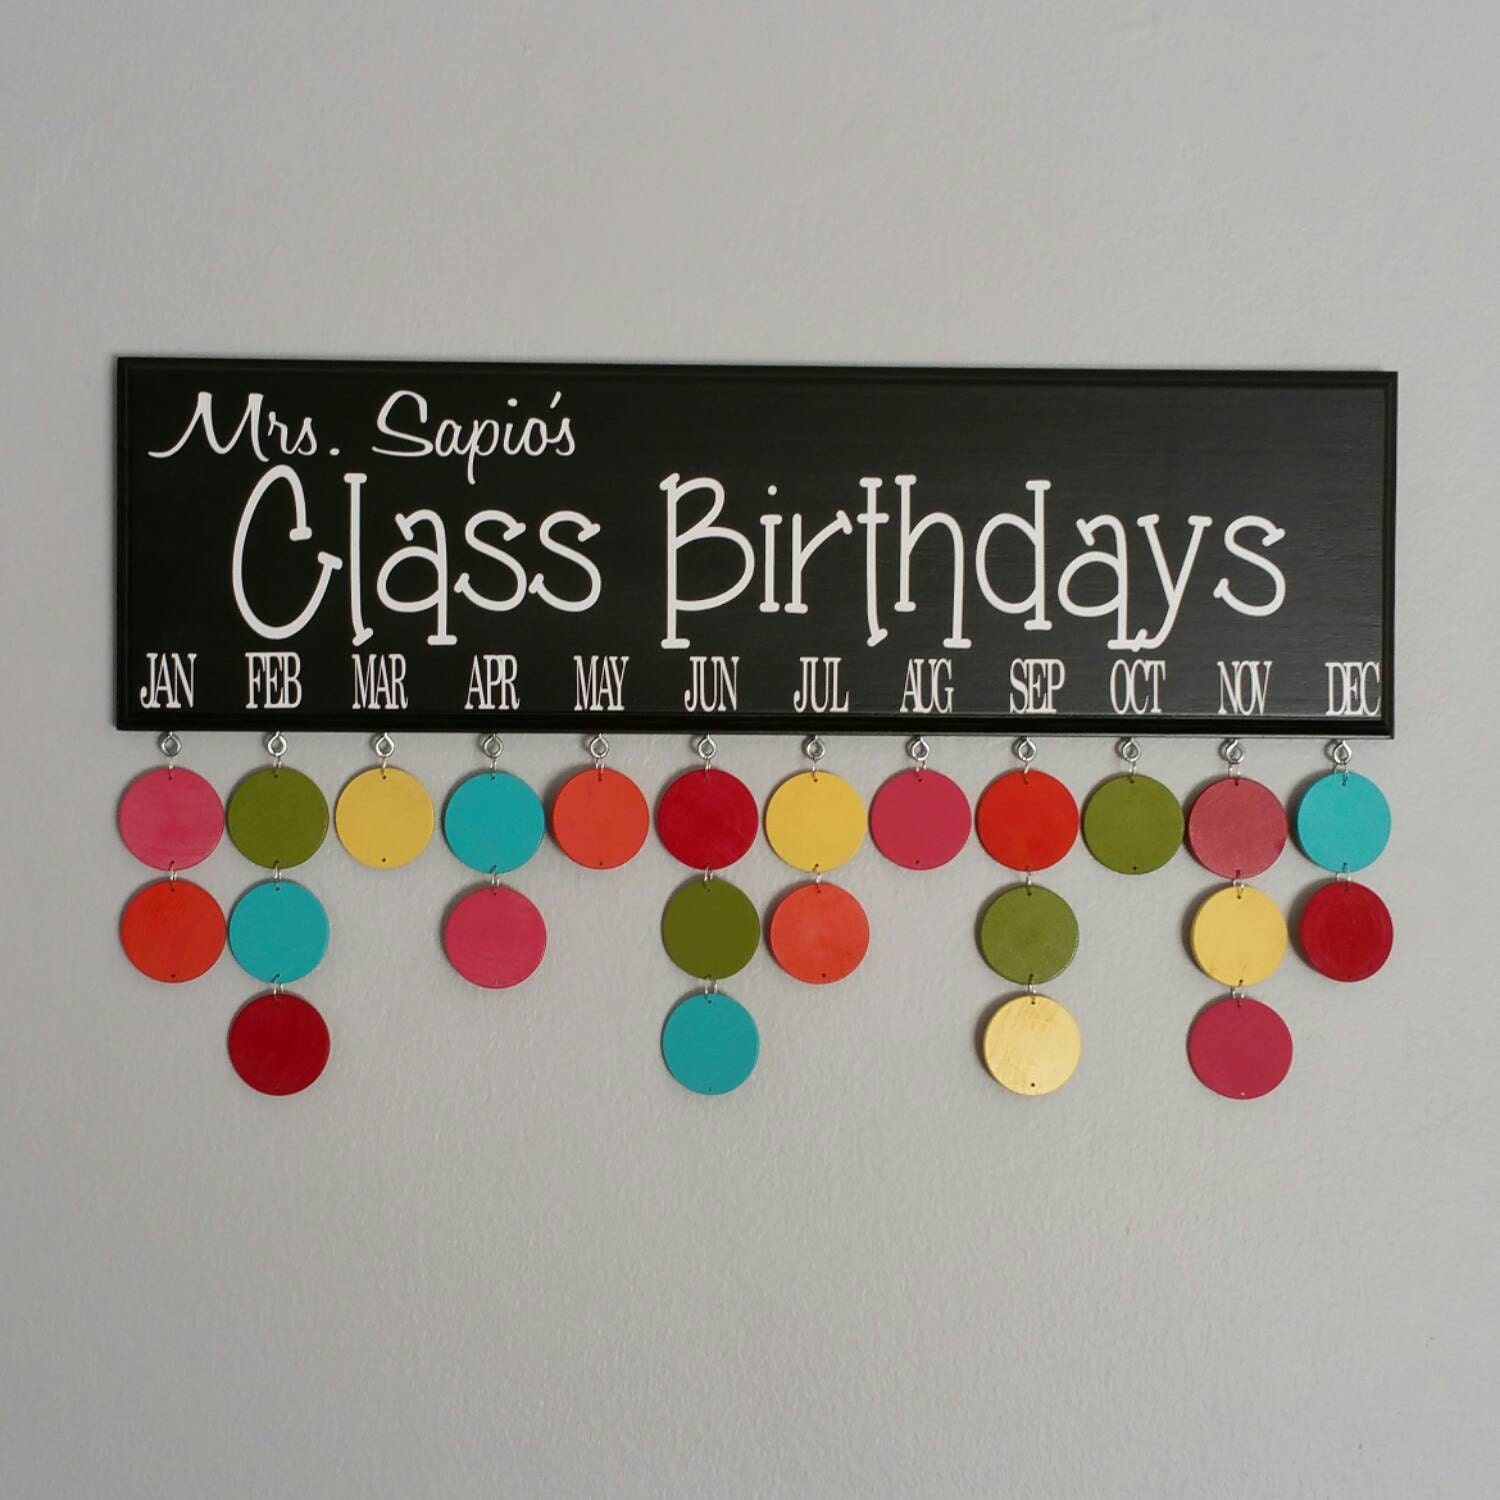 Classroom Decoration Happy Birthday ~ Class birthdays calendar teacher classroom